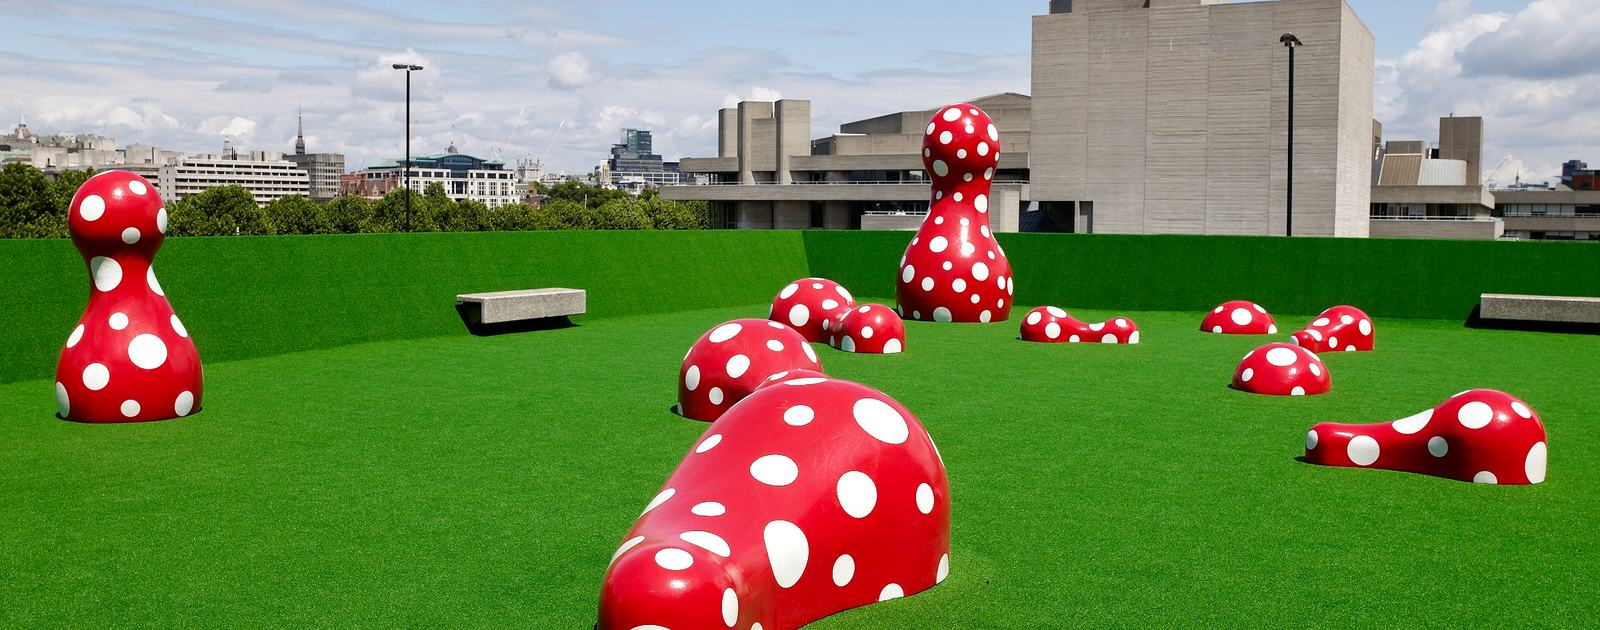 Yayoi Kusama  Guidepost to a New World, 2004 © Yayoi Kusama 2009 Photo: Roger Wooldridge Courtesy: Hayward Gallery, 2009